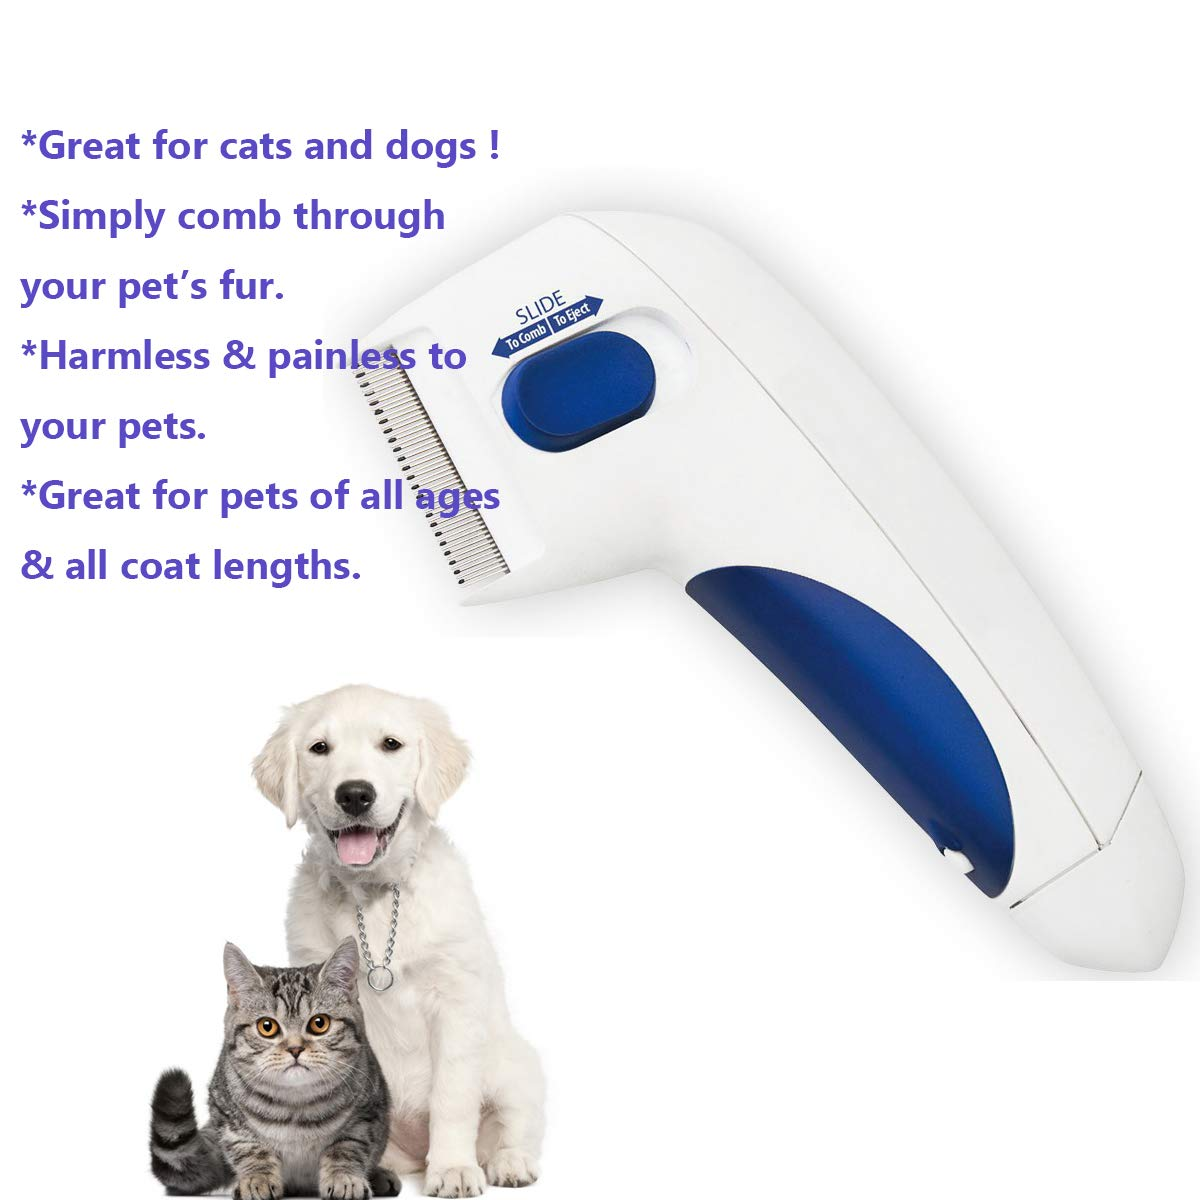 Heartbeat Electronic Flea Comb, Kills & Stuns Fleas, Perfect Pet Flea and Tick Comb Tool, Great for Dogs & Cats by Heartbeat (Image #3)